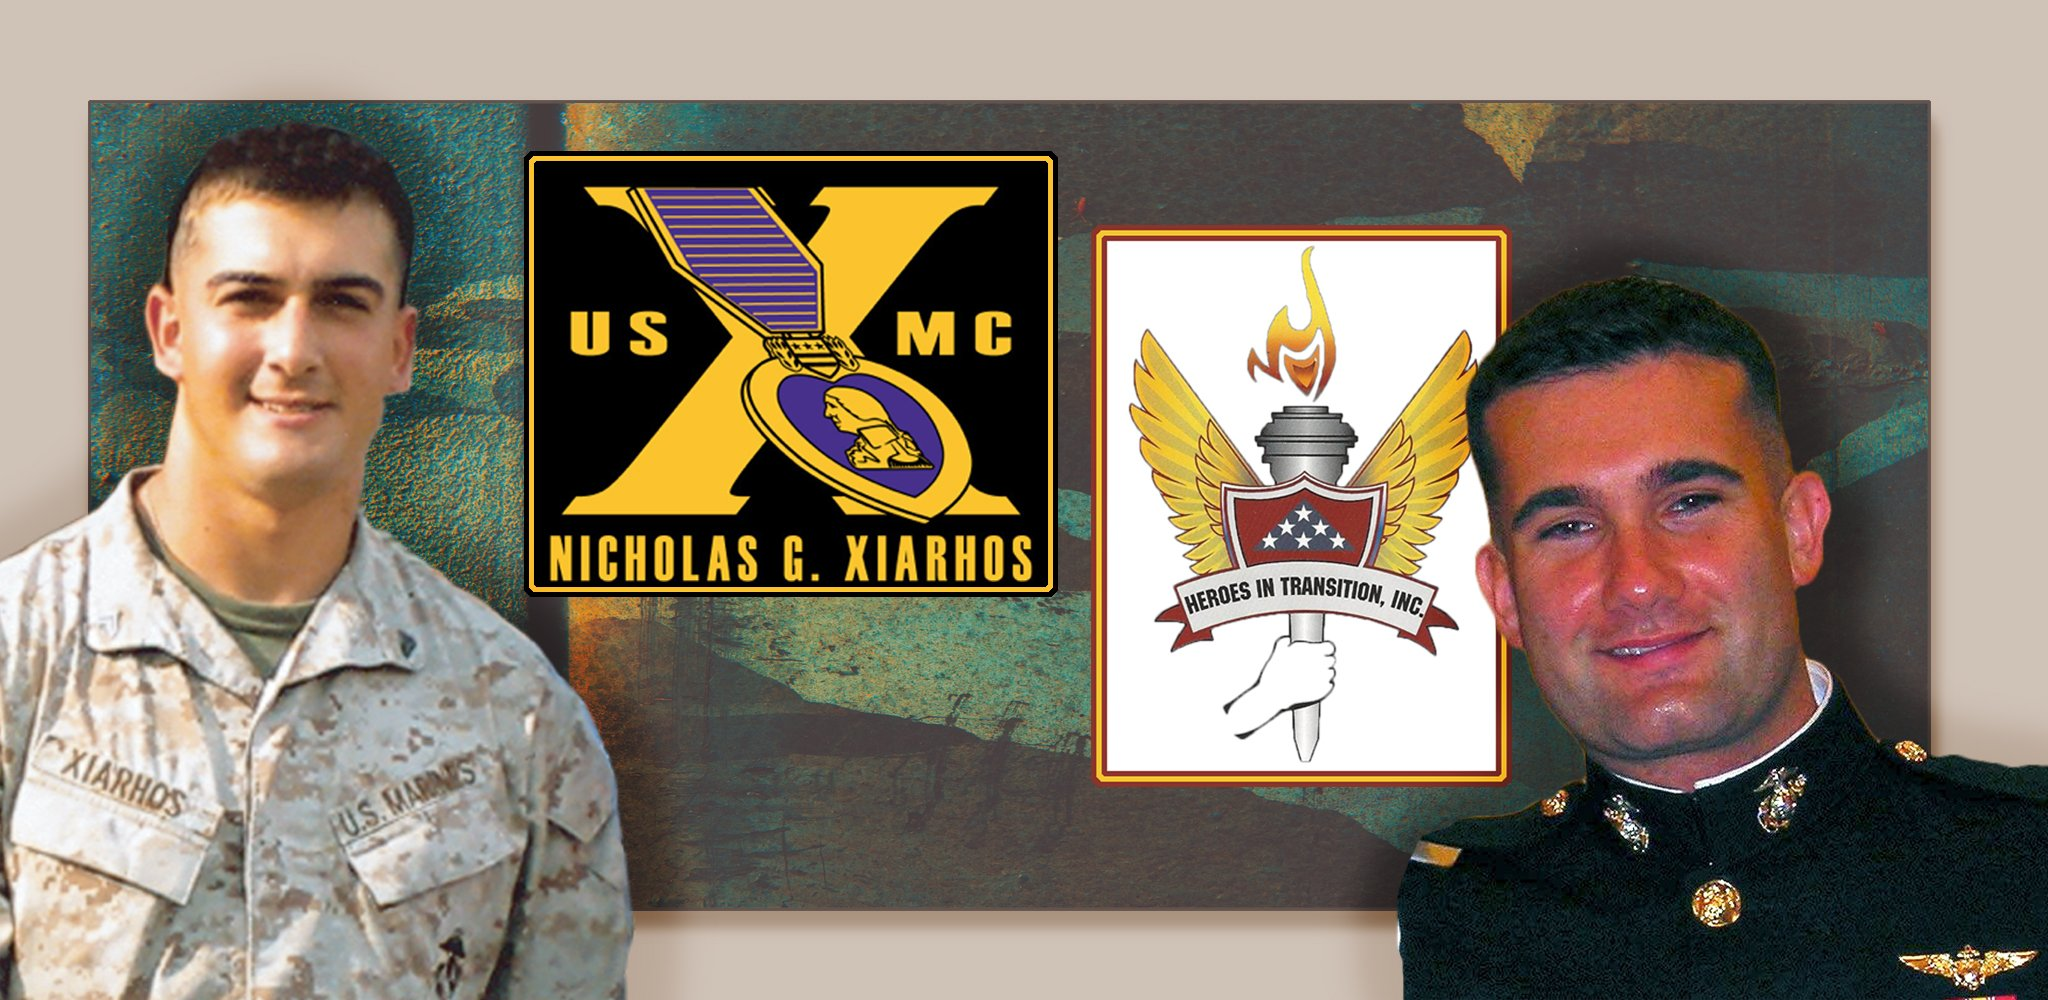 The Veteran's Top Shot Invitational Charity Event on Cape Cod is annual event to raise money for Heroes in Transition, Inc. and the Nicholas G. Xiarhos Memorial.